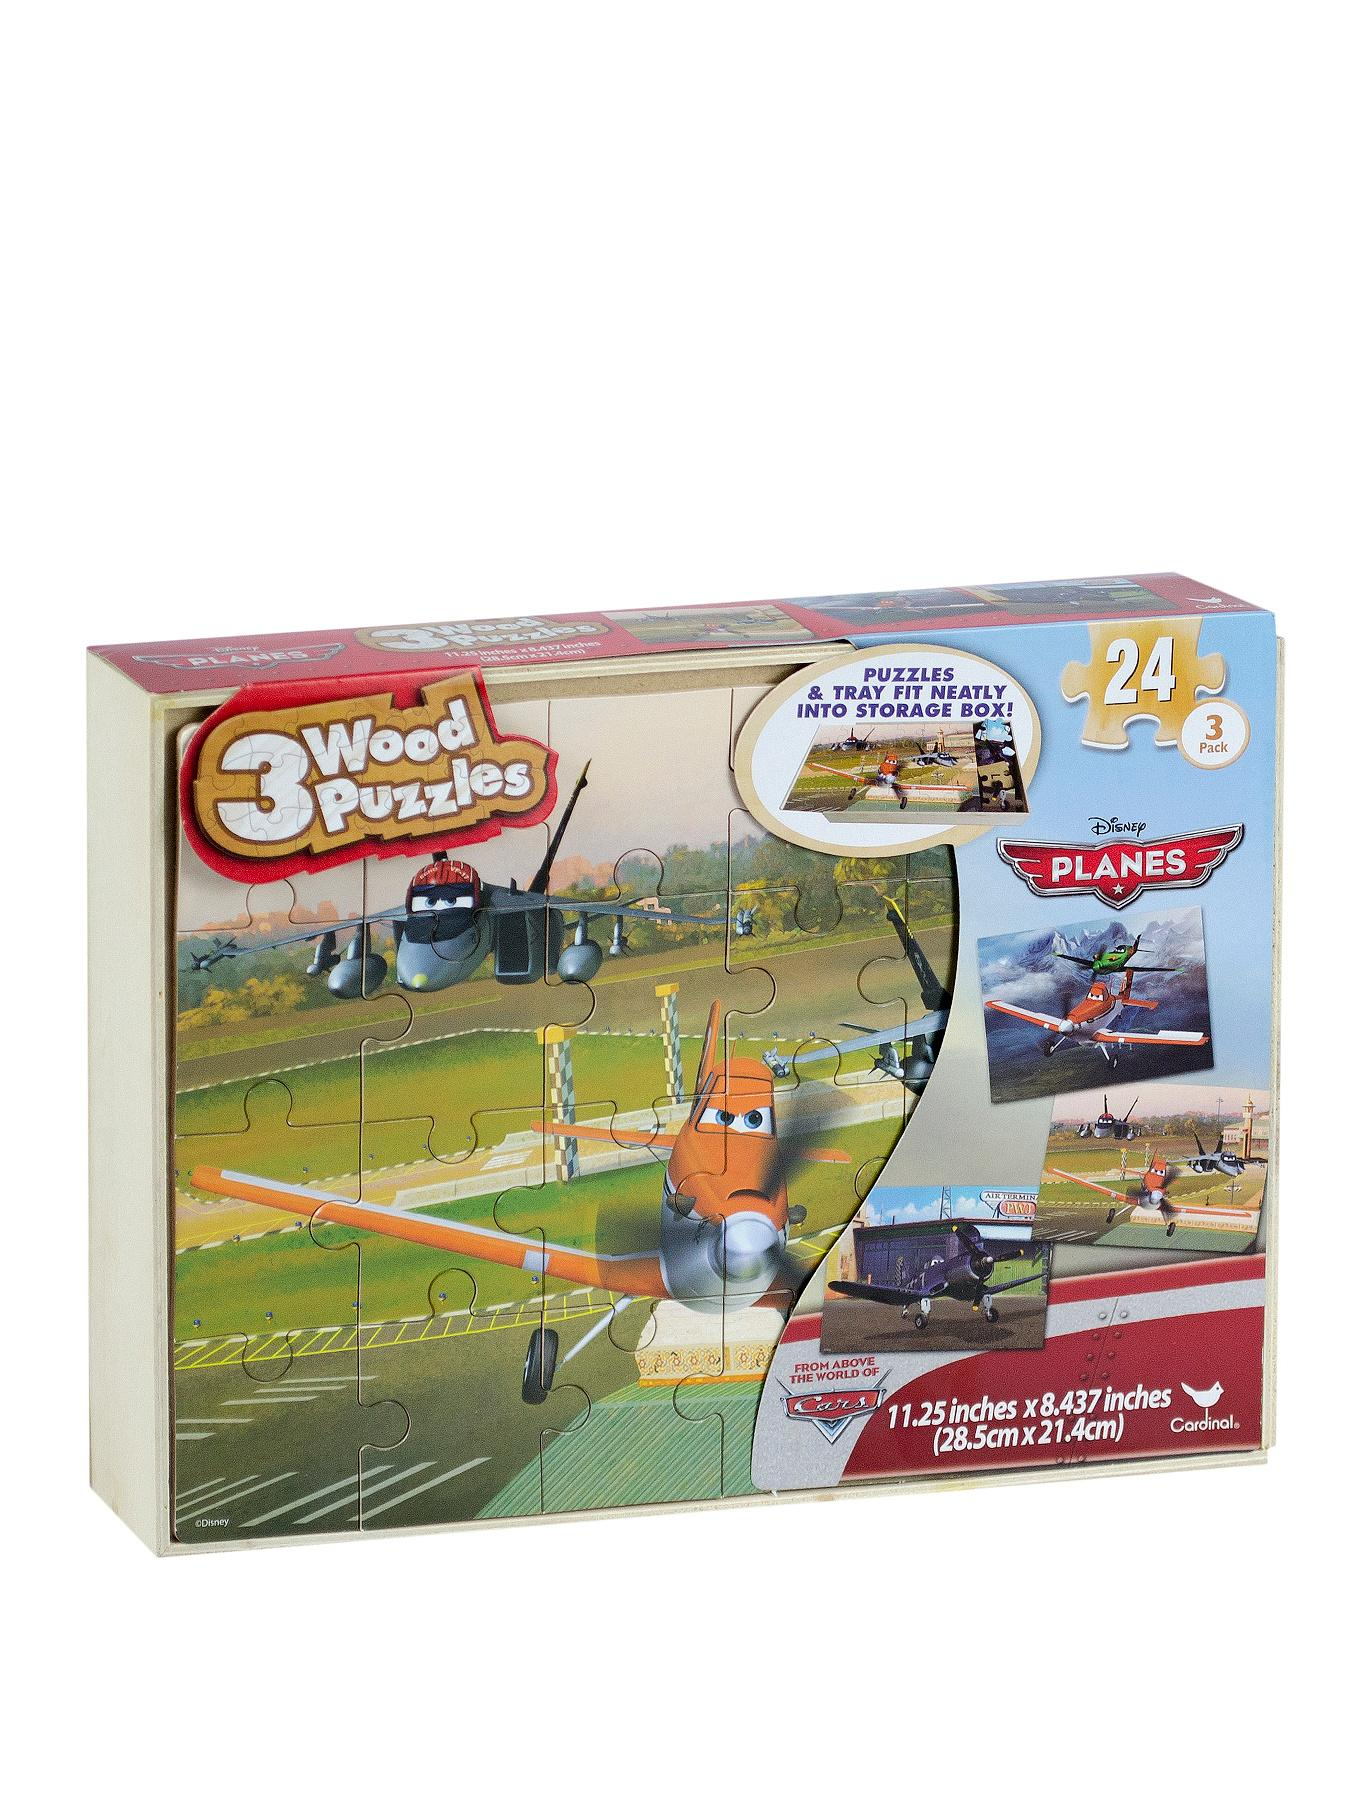 Disney Planes 3 Wooden Puzzles in a Wooden Case